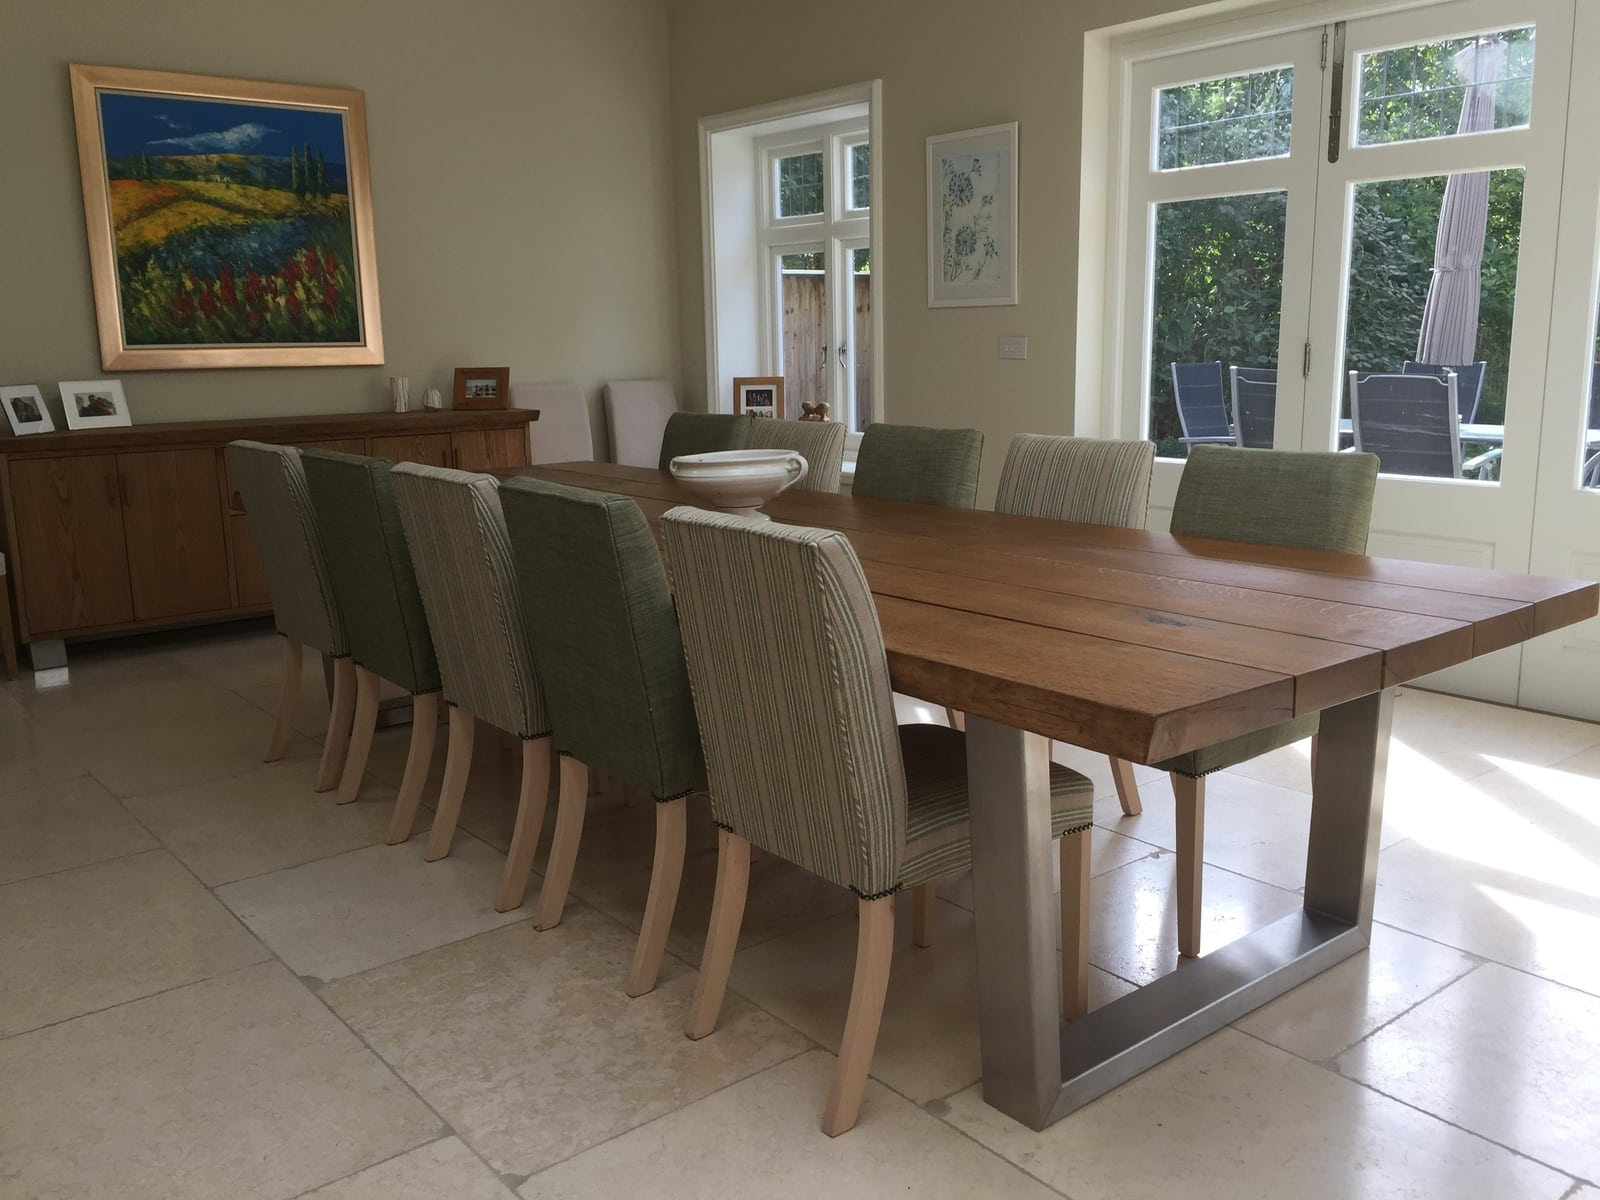 Large oak sideboard and dining table setproject 531Abacus Tables image 4